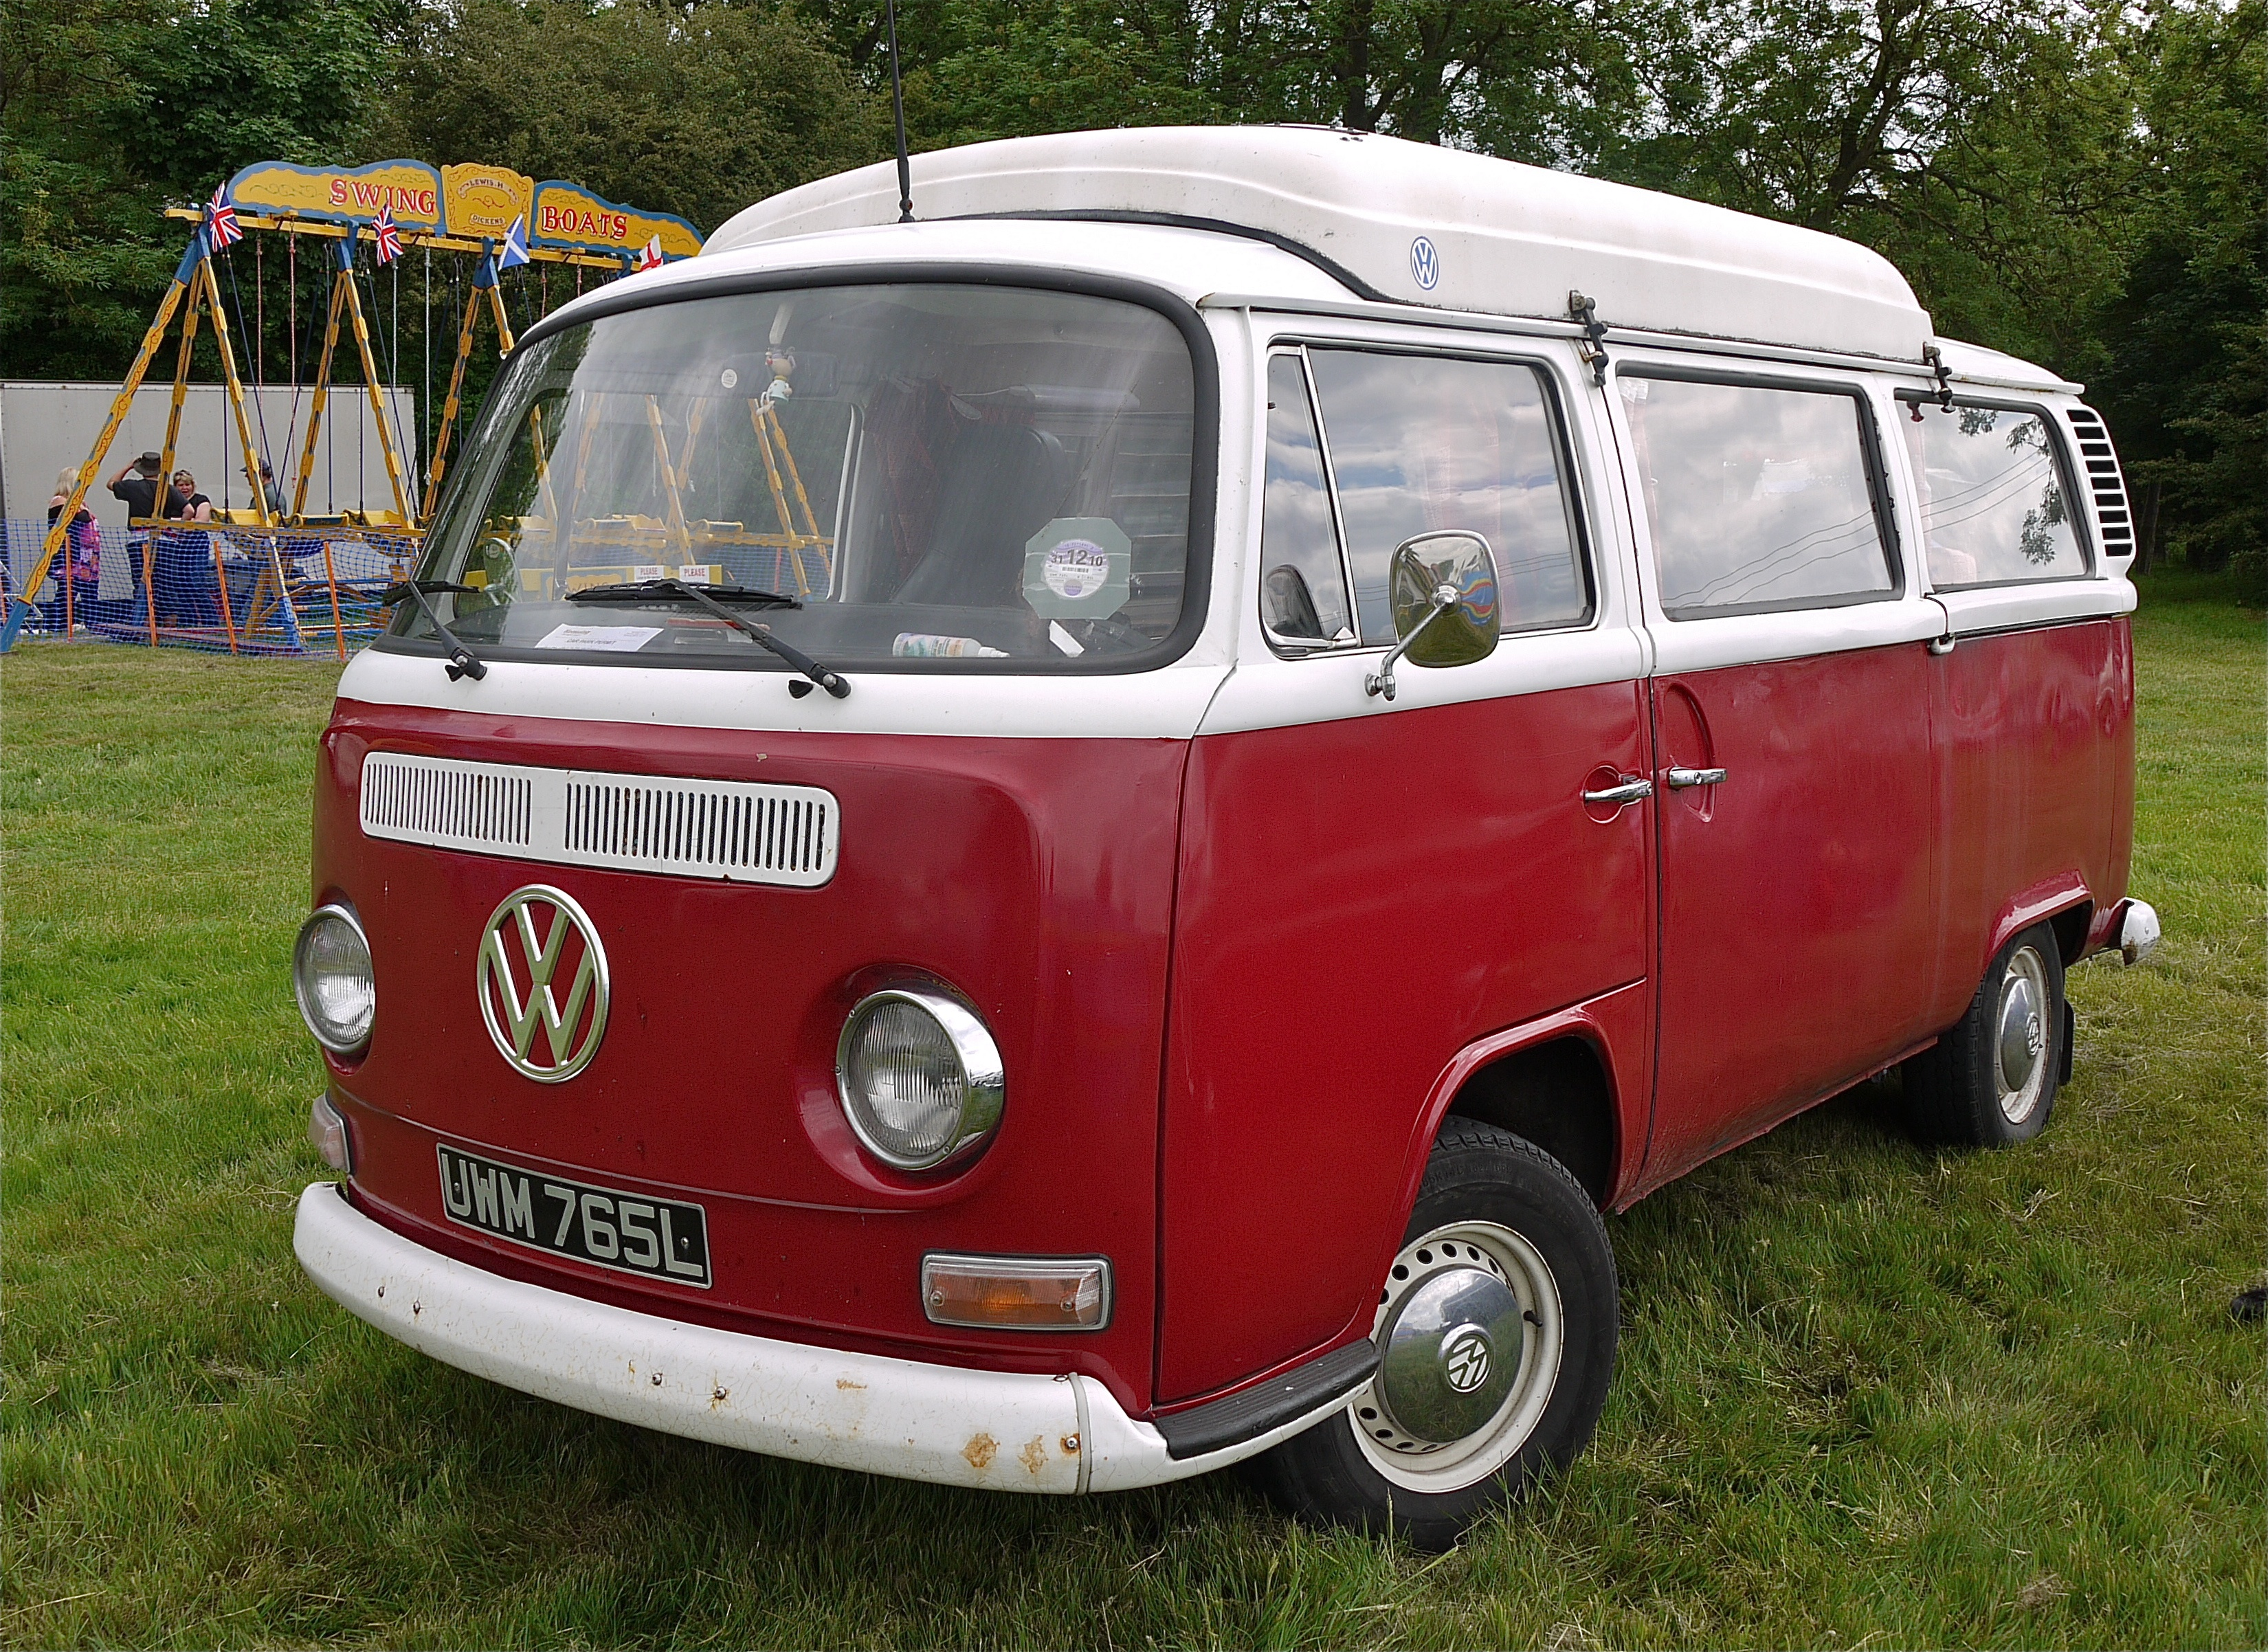 not s board type a in least camper right volkswagen canada now u van will us at newfoundland to gets vw the post bring ready why back ferry